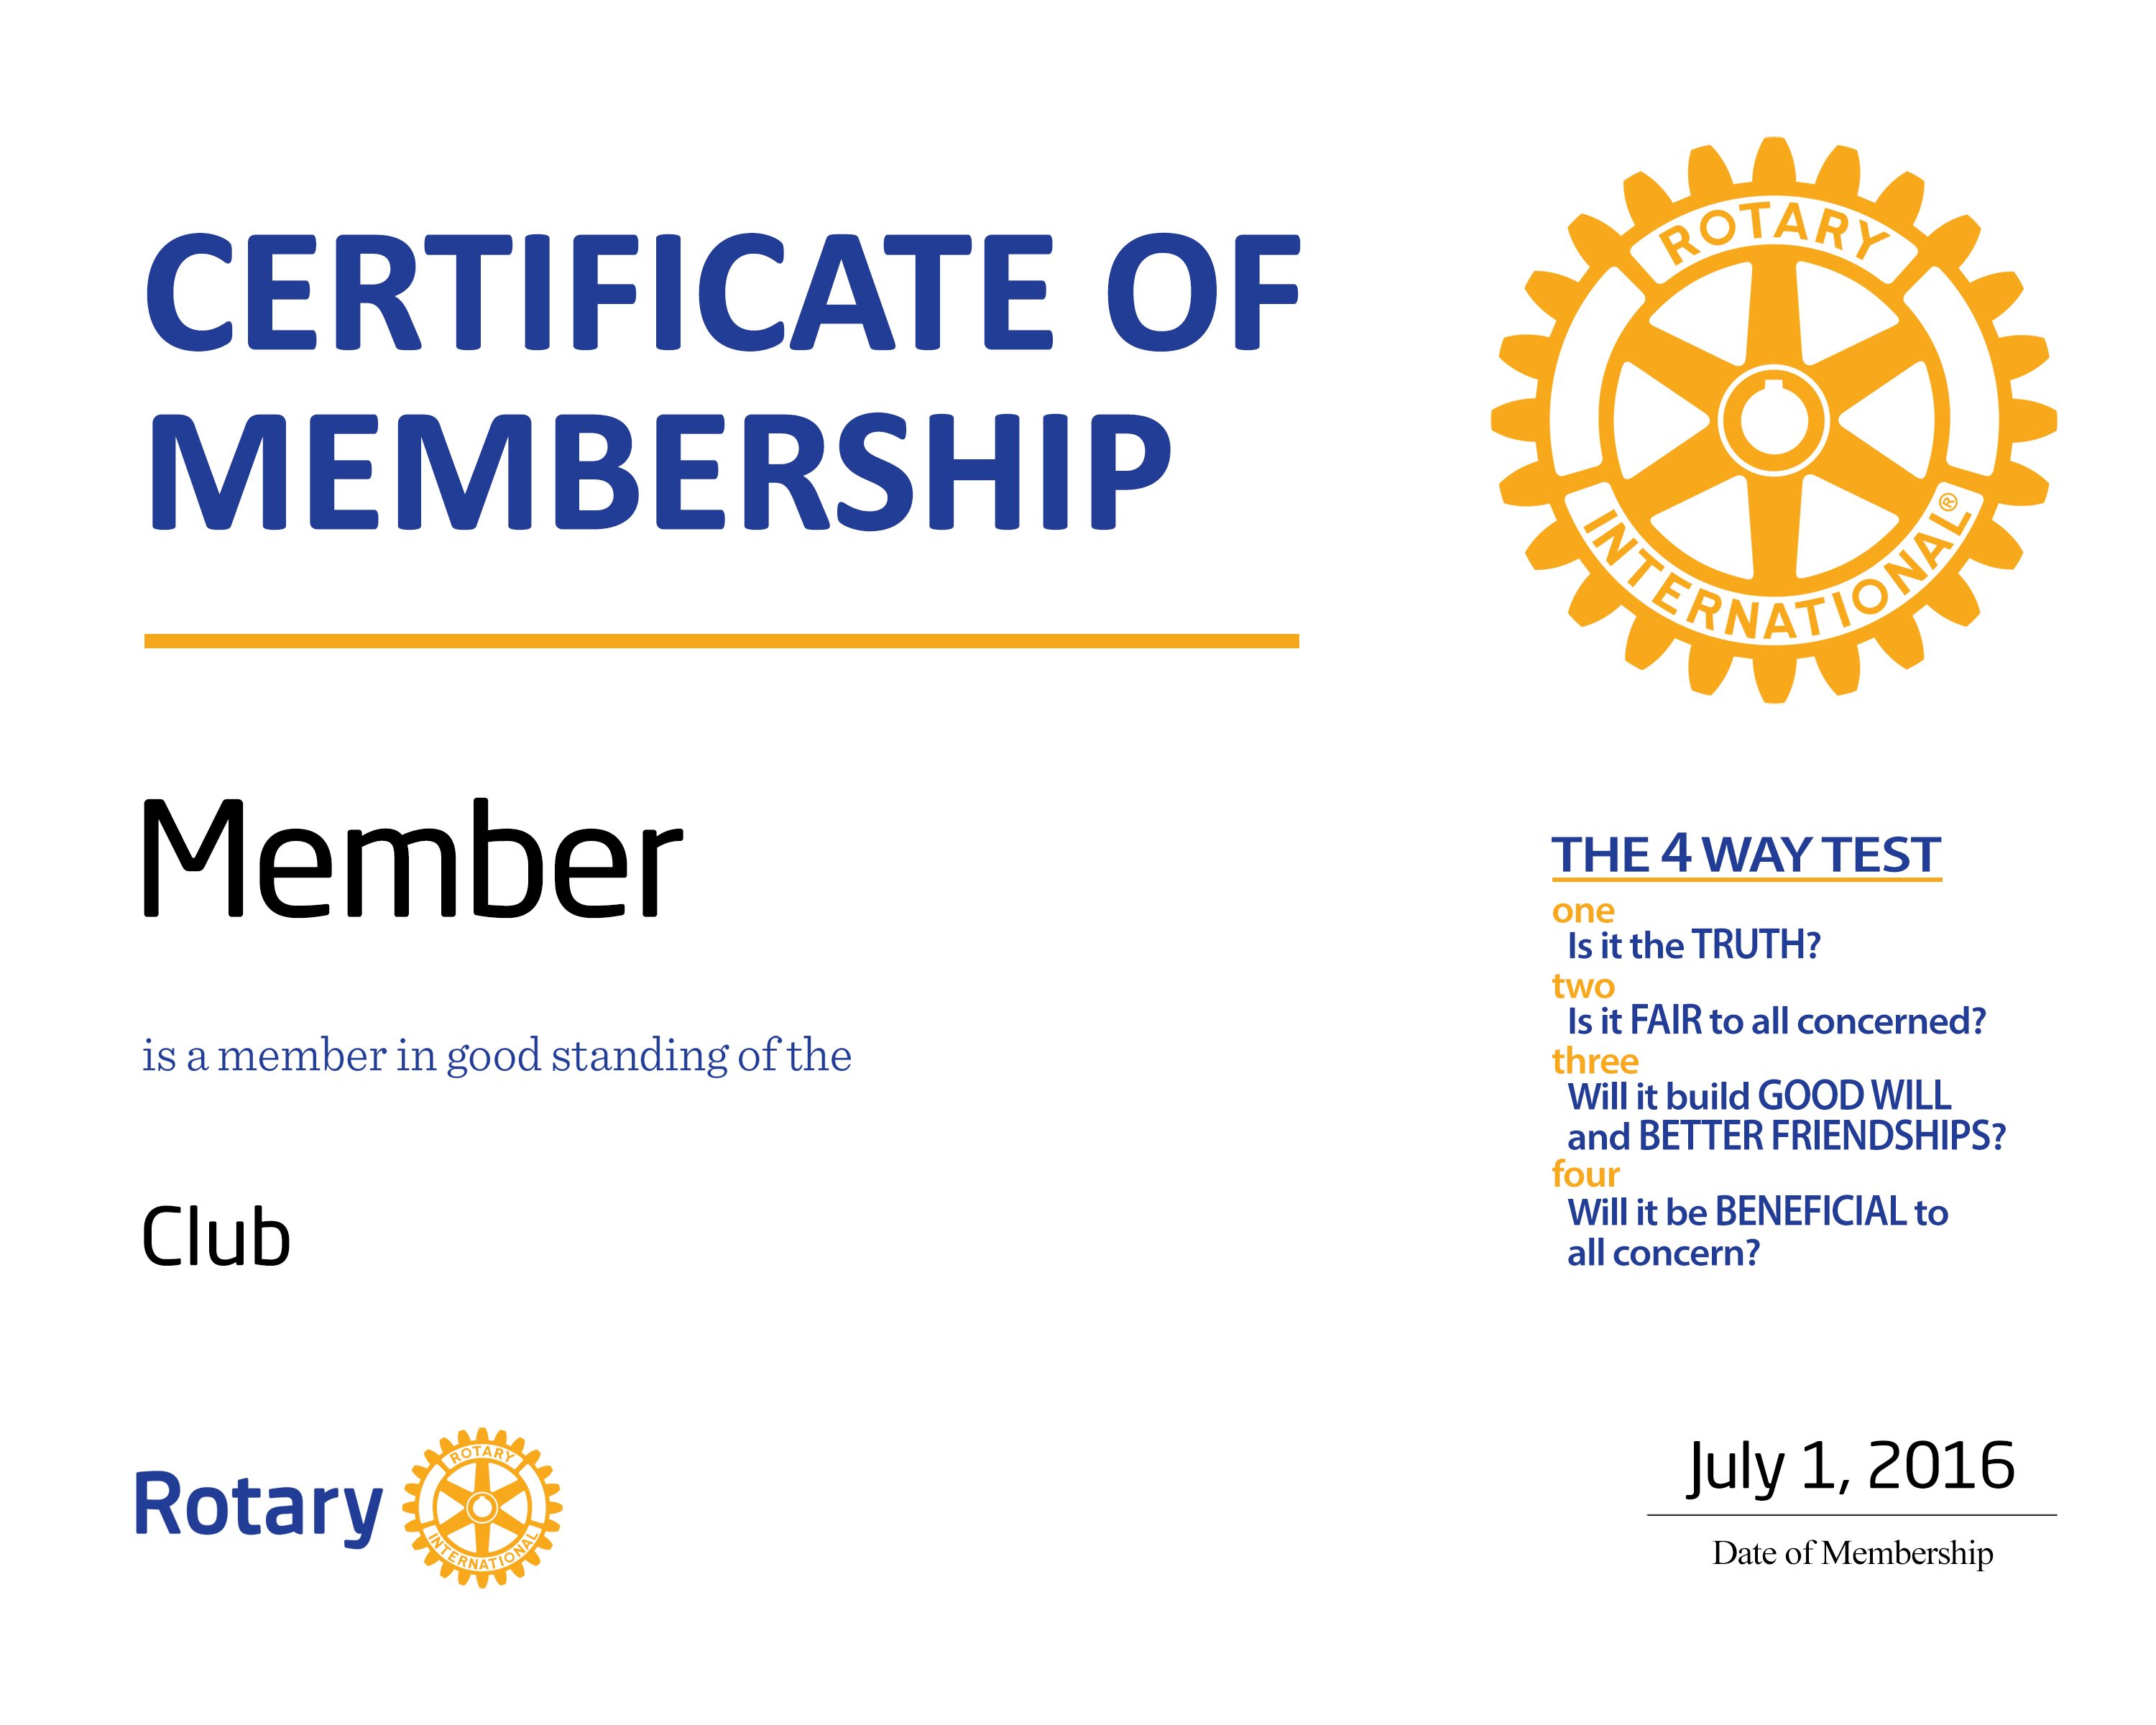 NEW MEMBER (CERTIFICATE, 4-WAY & OBJECT)